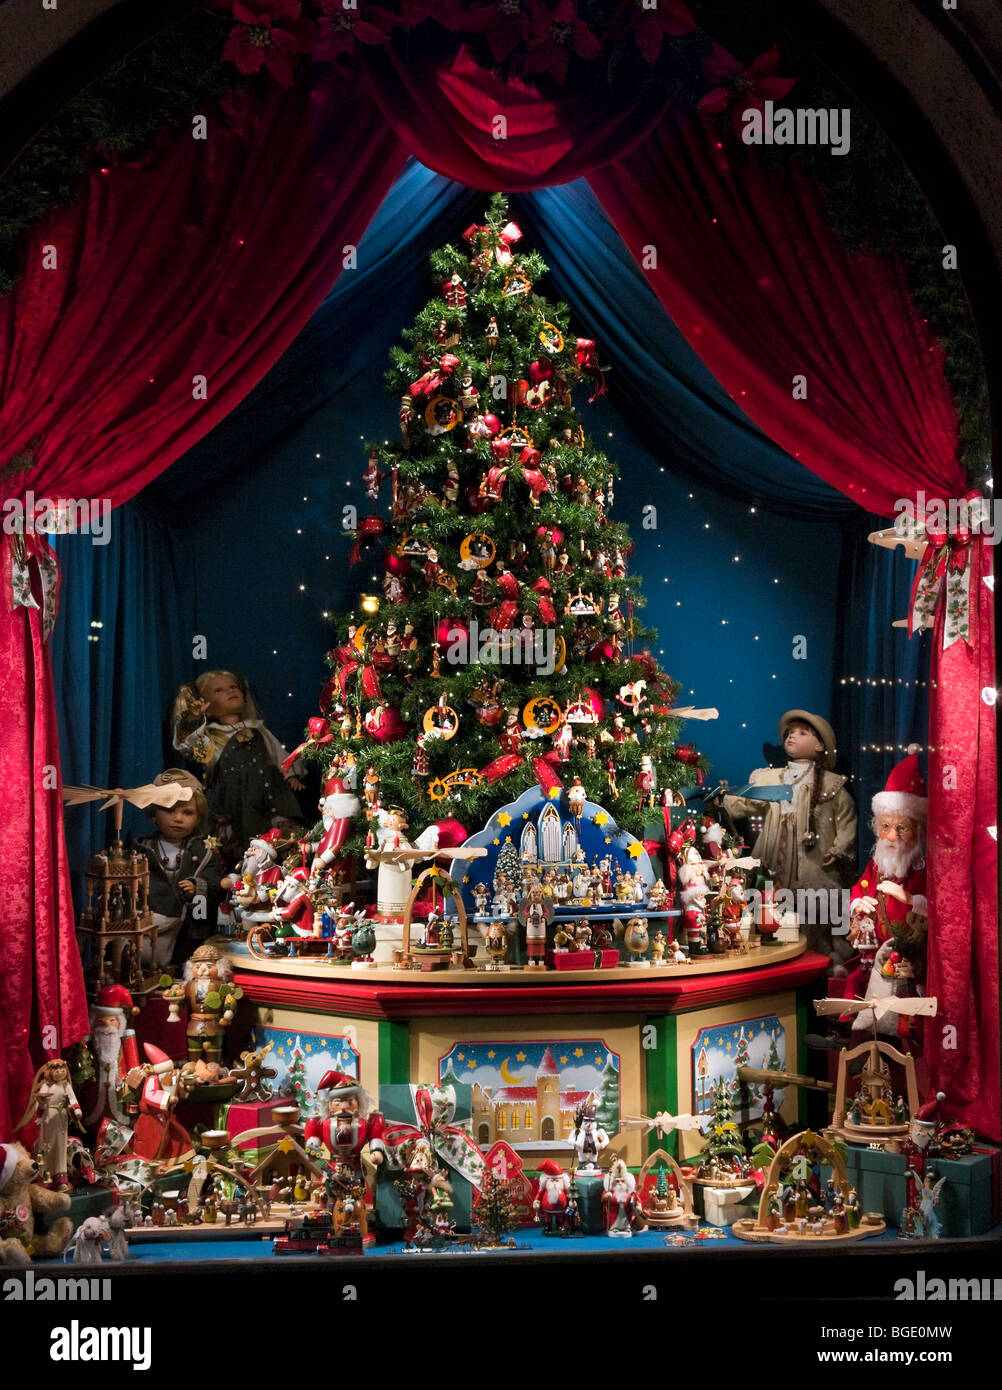 Christmas Window Display At Night In The Historic City